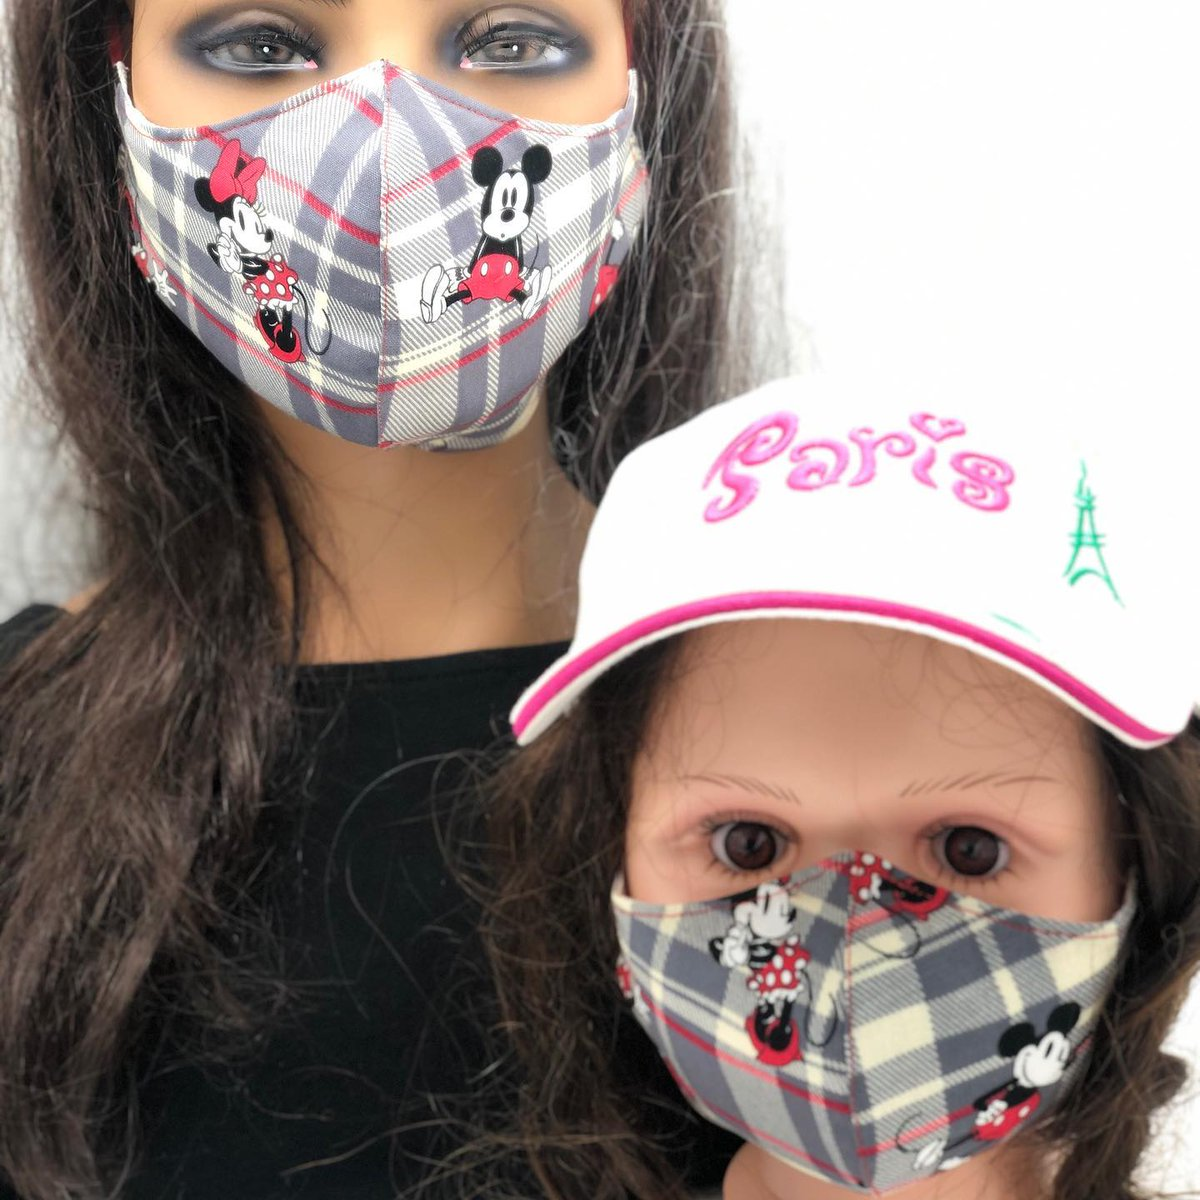 Mommy and me face mask. #facemasks #facemask #mascara #covid #covid19 #cute #design #custom #customized #custommask #customizedmask #mickey #mickeymouse #minnie #minniemouse #love #kapimagen https://t.co/vqwd5cUs1x https://t.co/MPYtrHi4Xz